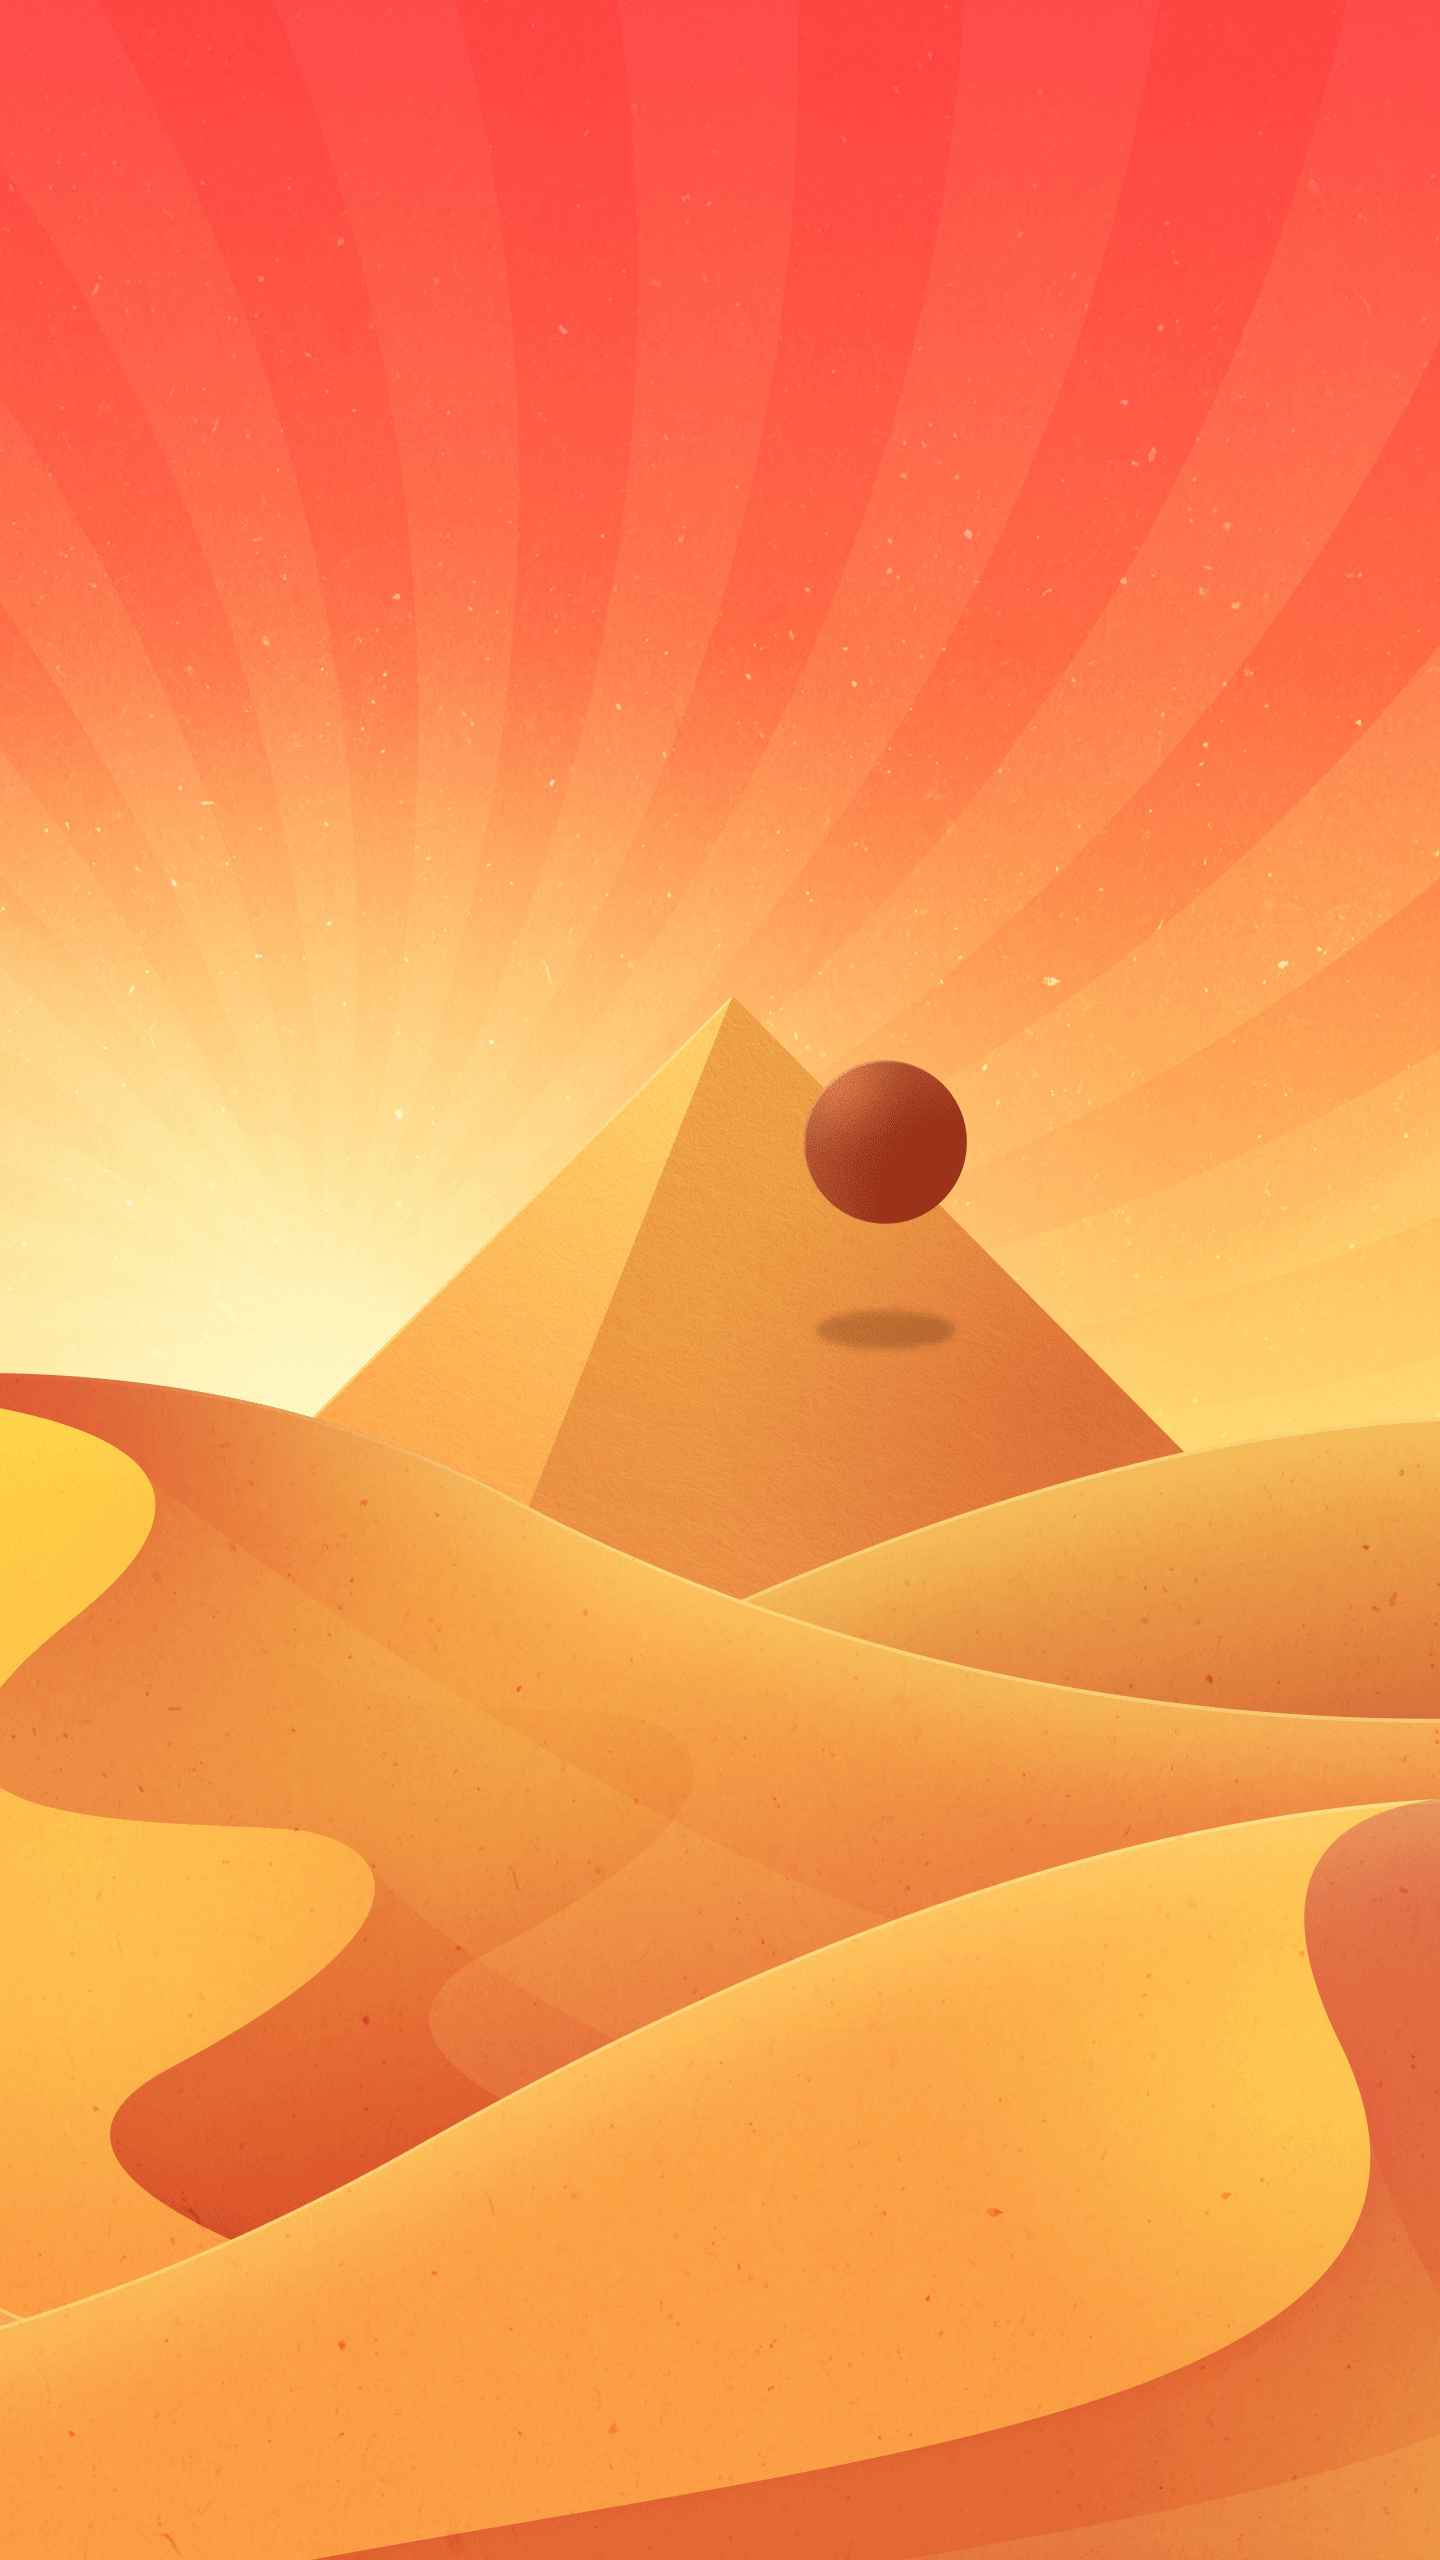 Desert Pyramid iPhone Wallpaper